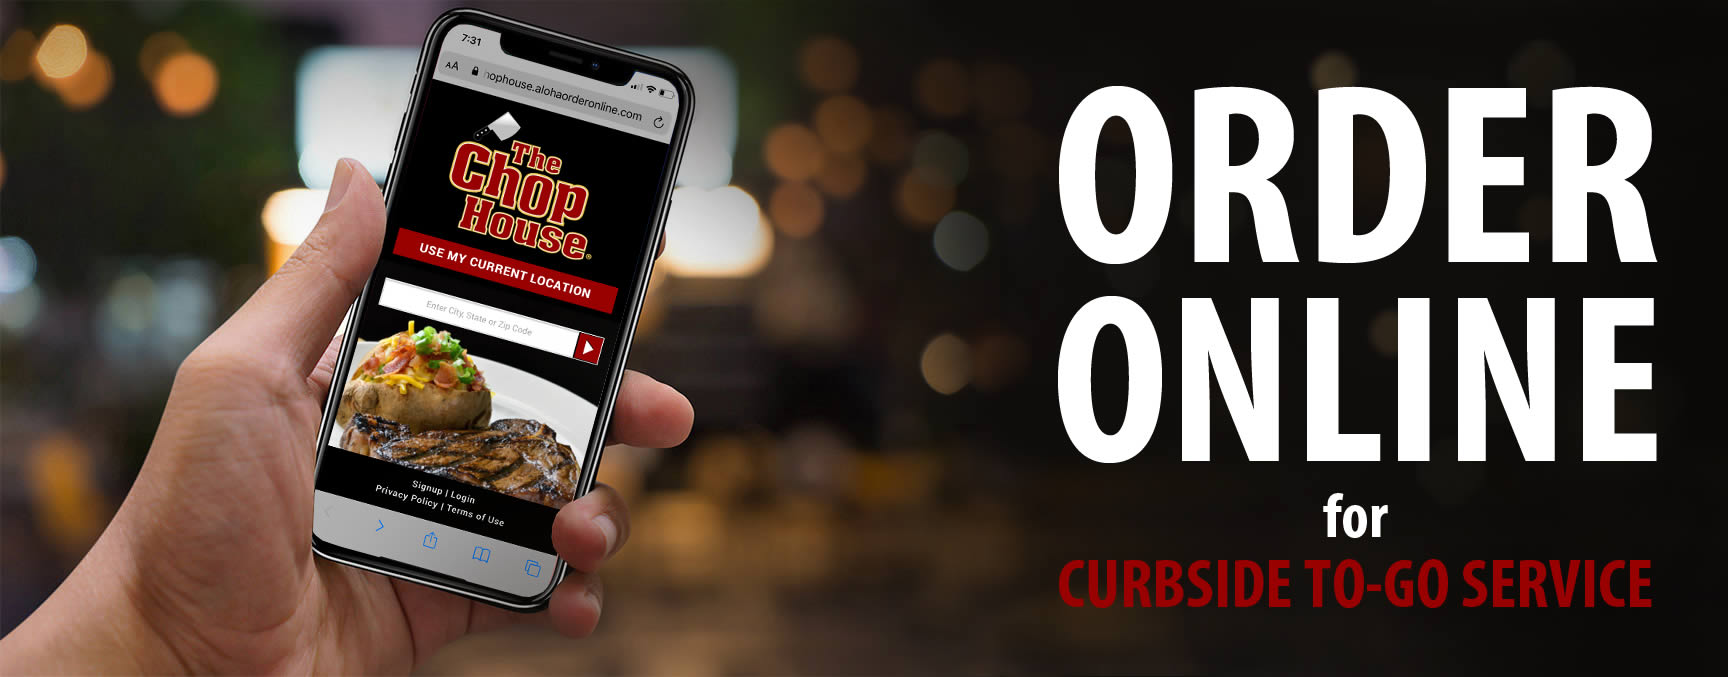 The Chop House online ordering for curbside to-go service (all locations except Sevierville, TN).